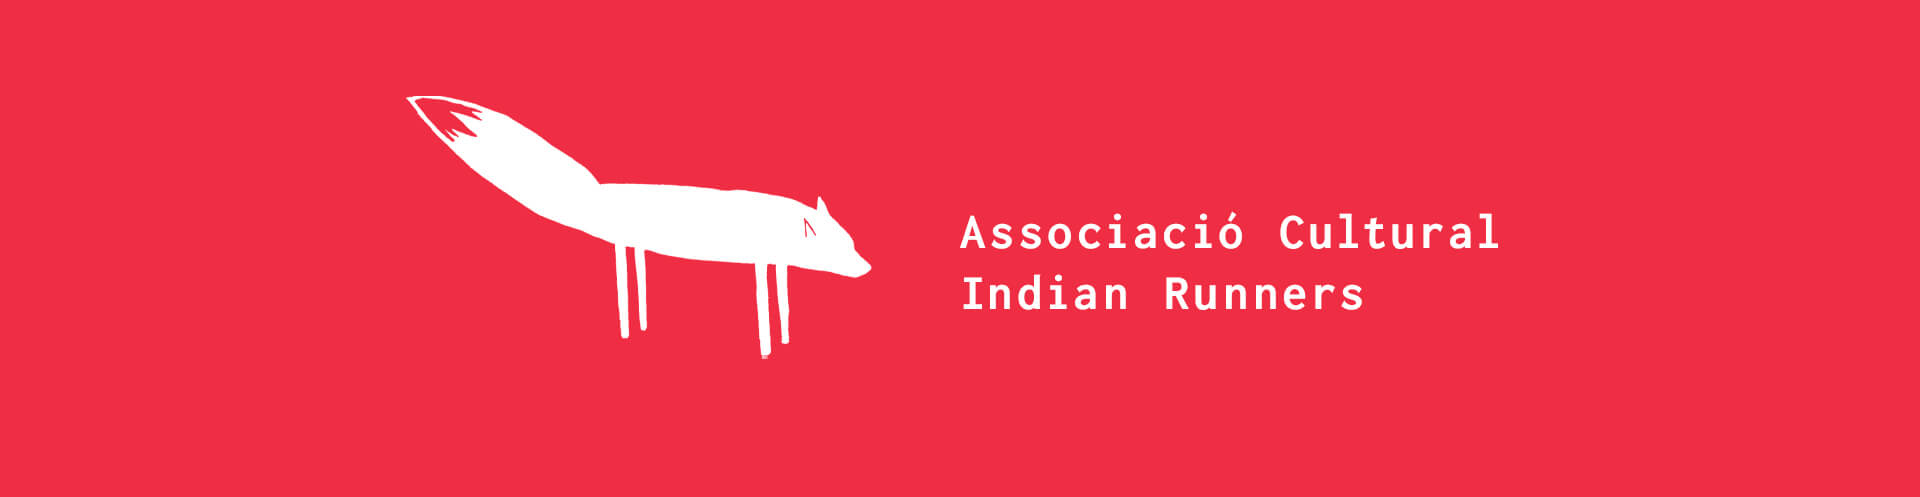 Associació Cultural Indian Runners